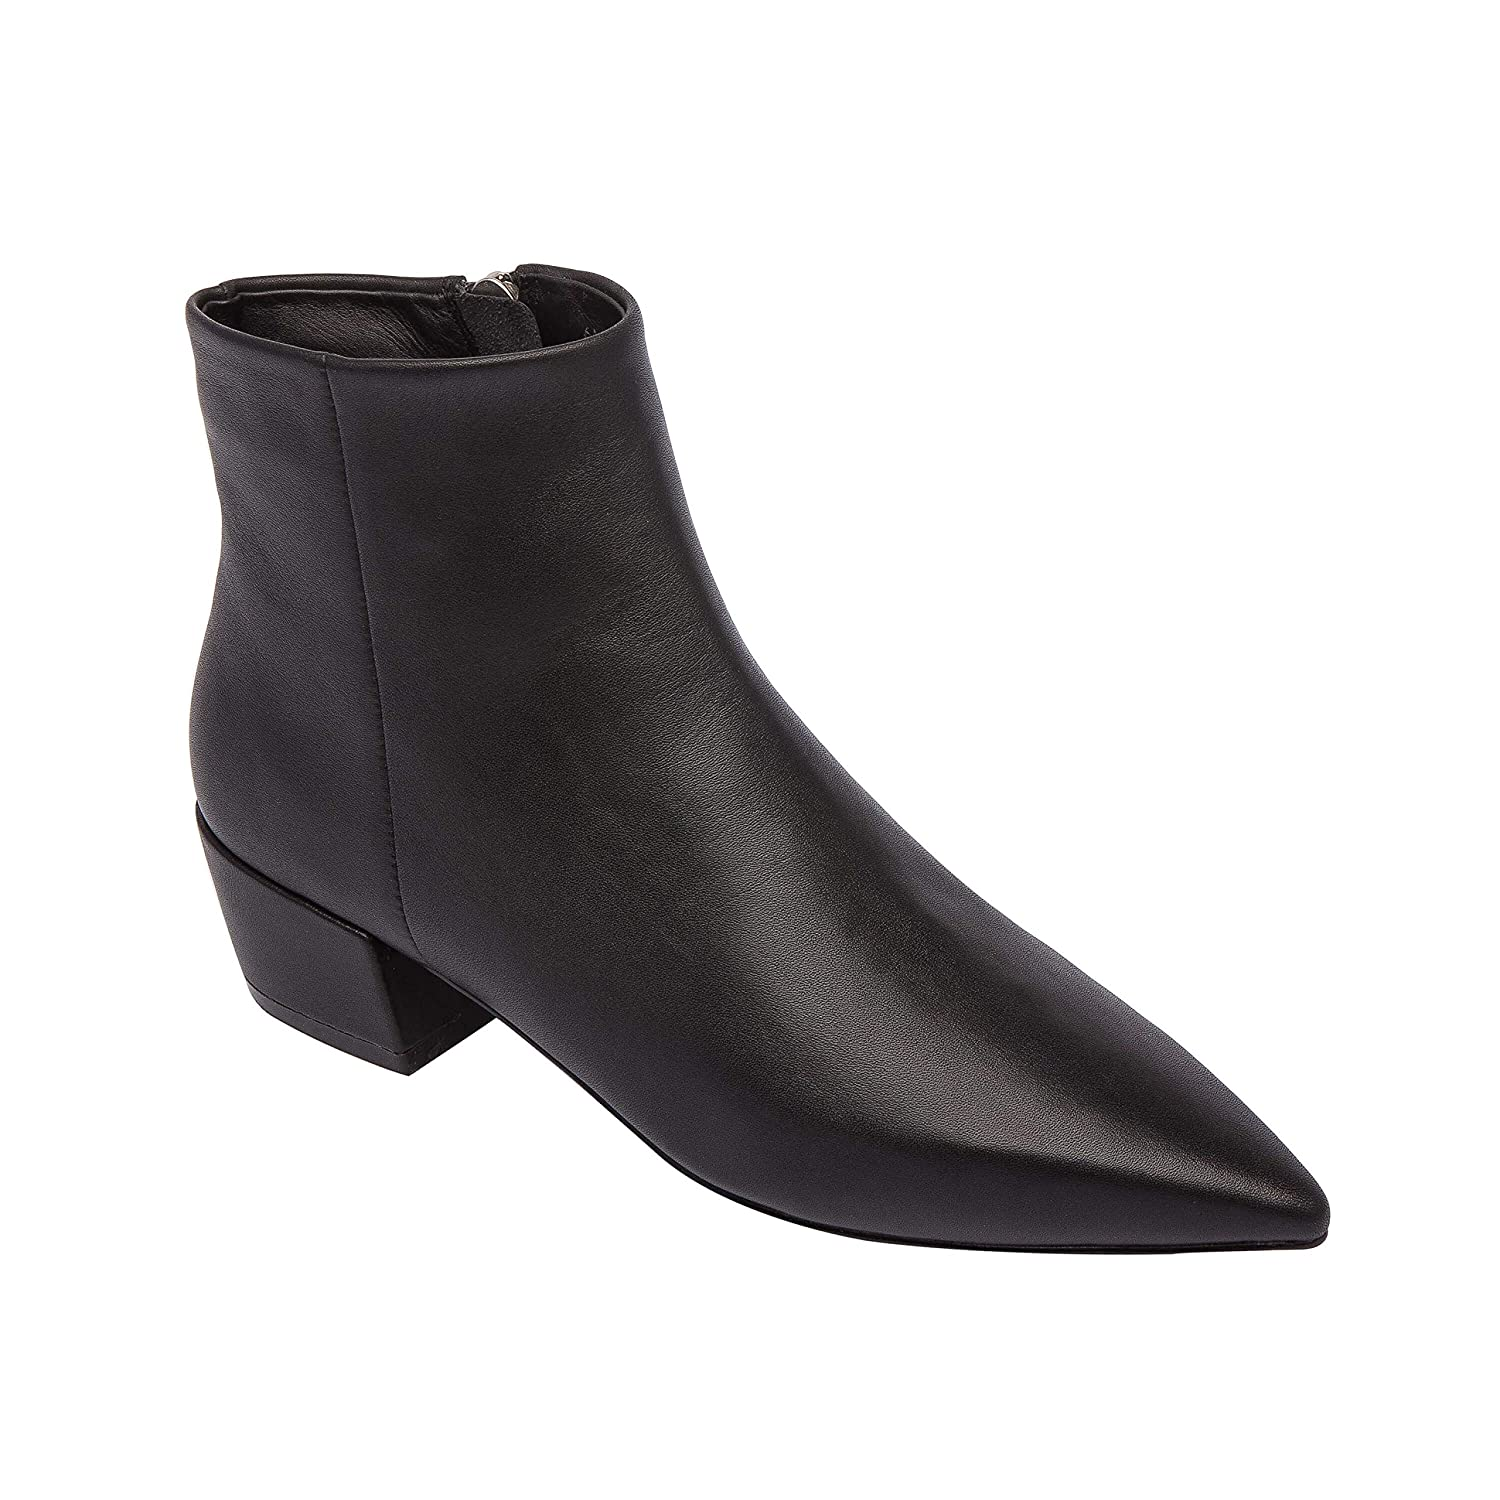 fcd64bf1b65 Amazon.com | Robyn | Waterproof Pointy Toe Low Heel Mod Ankle Bootie  Leather Patent Comfortable Rain Boot (New Fall) | Shoes